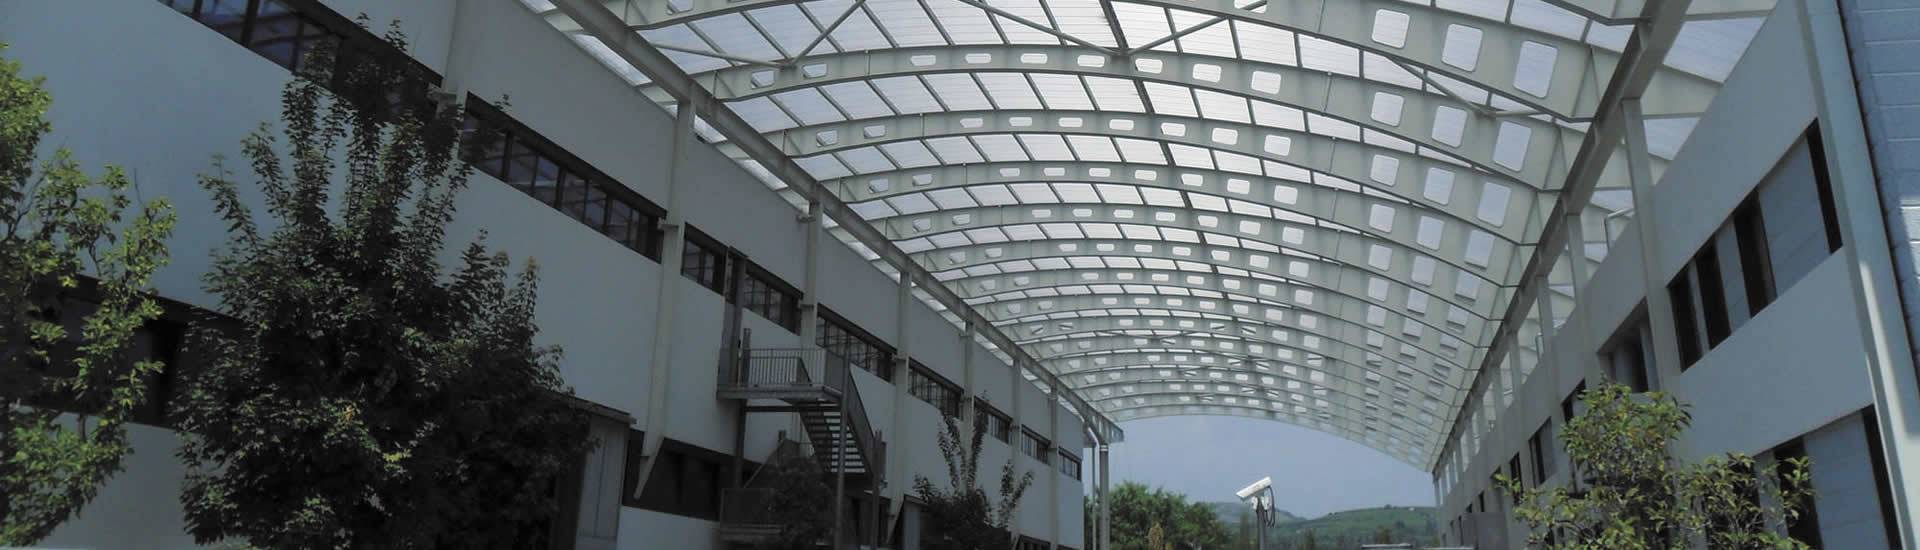 Frosted polycarbonate sheets are covering the space between two building.